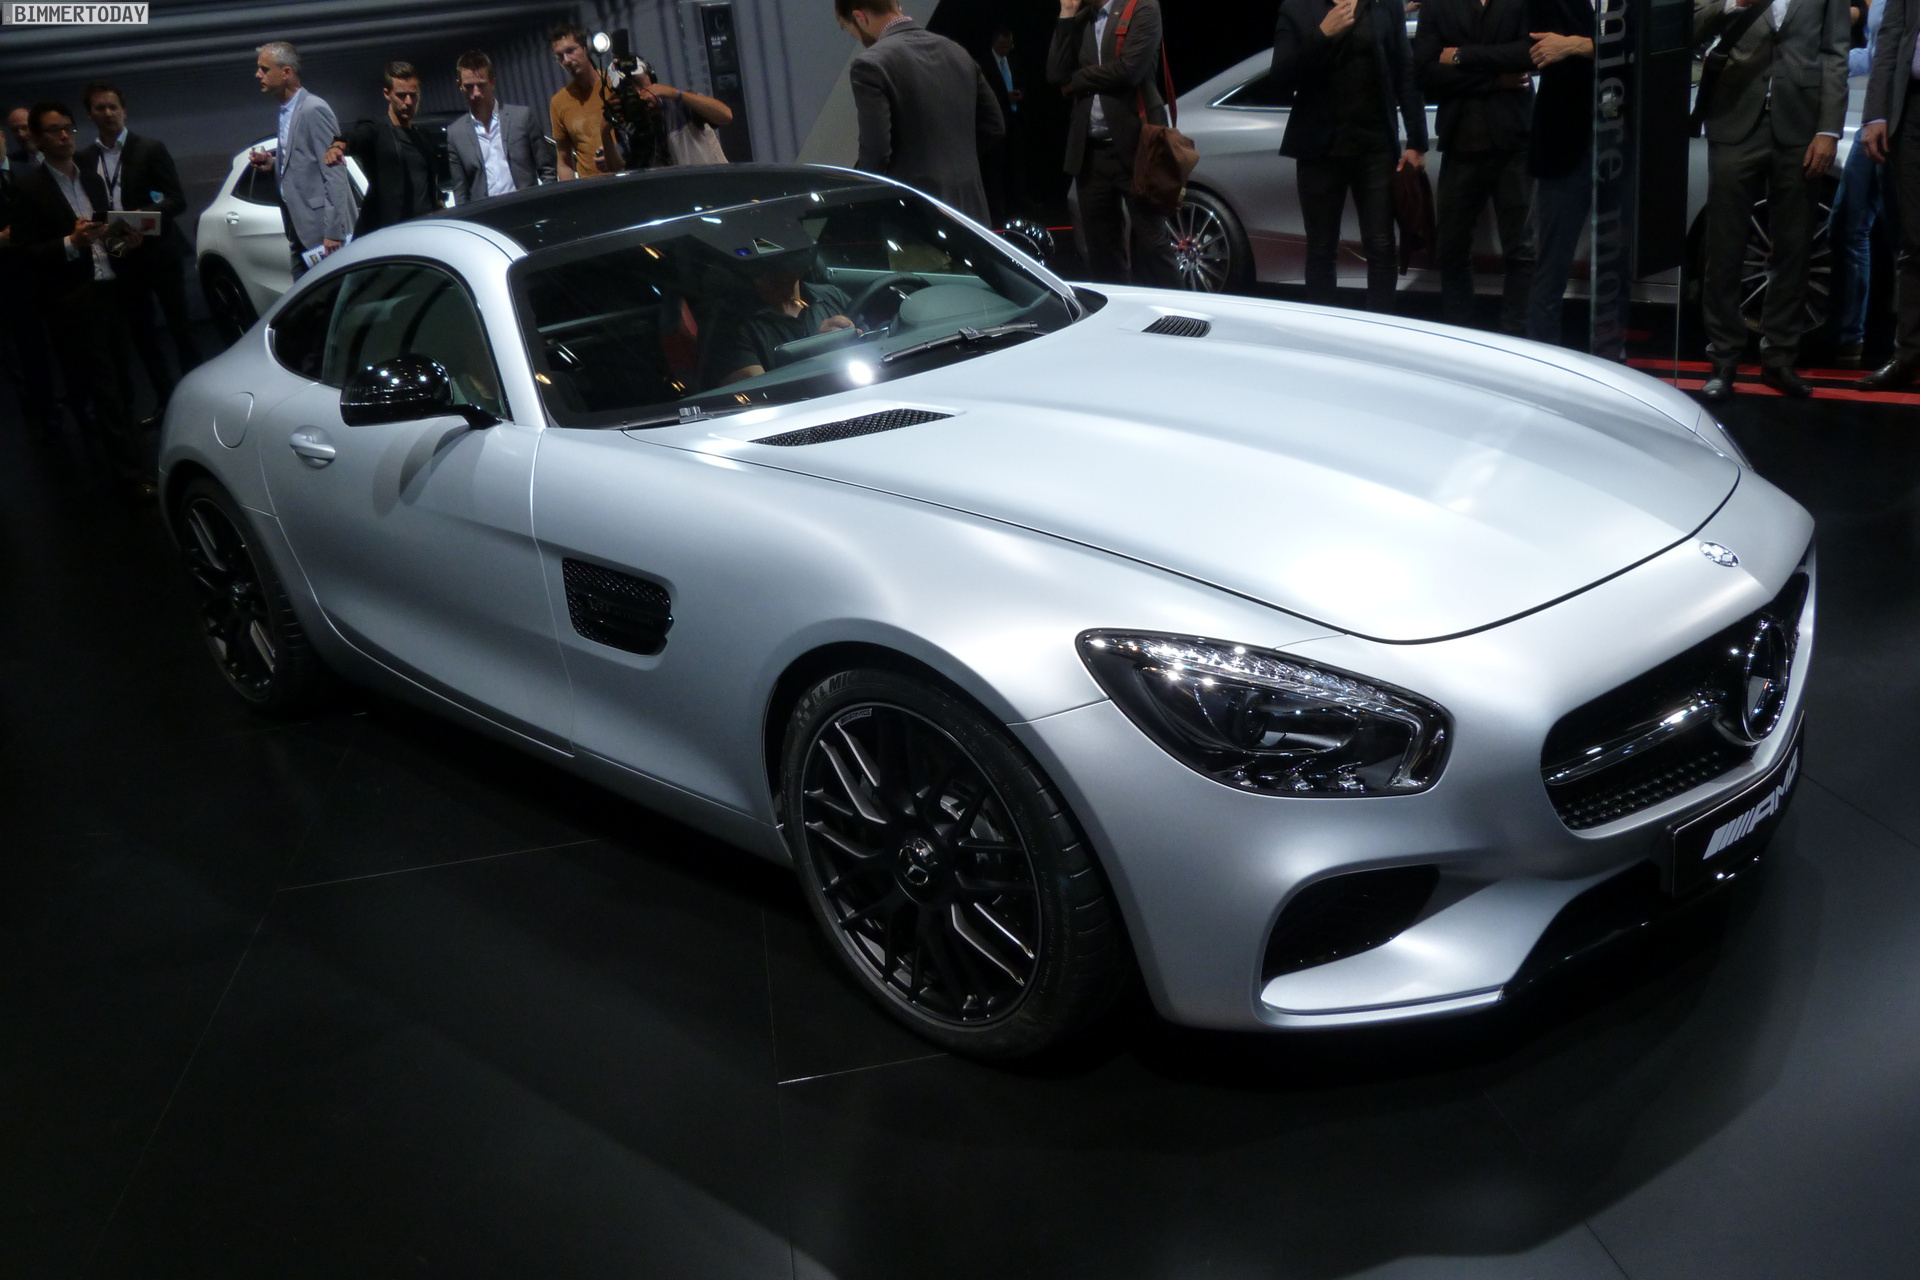 2014 Mercedes Benz AMG GT V8 Biturbo Autosalon Paris LIVE 01